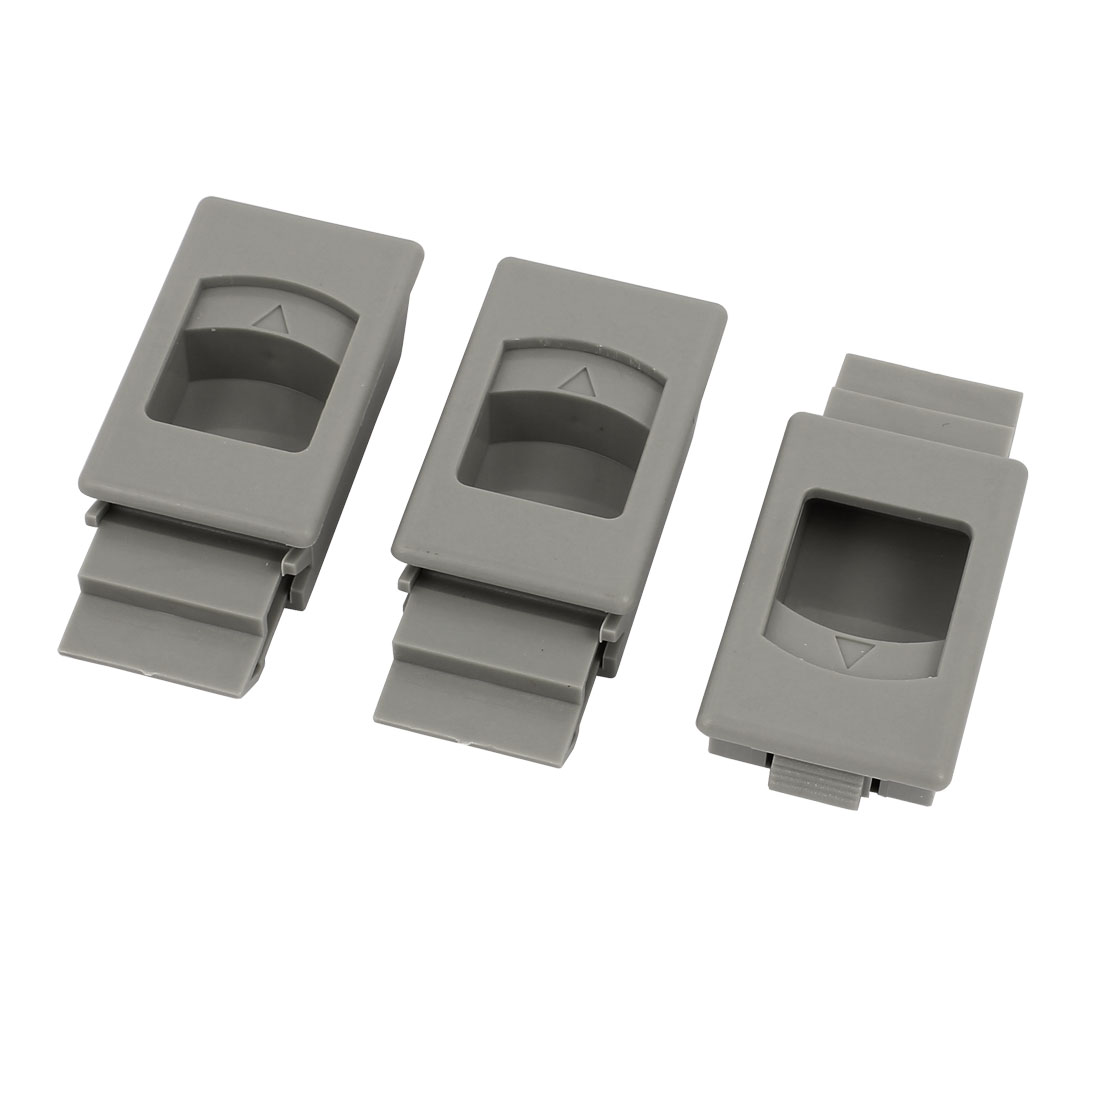 Window Door Inside Pull Rectangular Plastic Slide Latch Fittings 3pcs